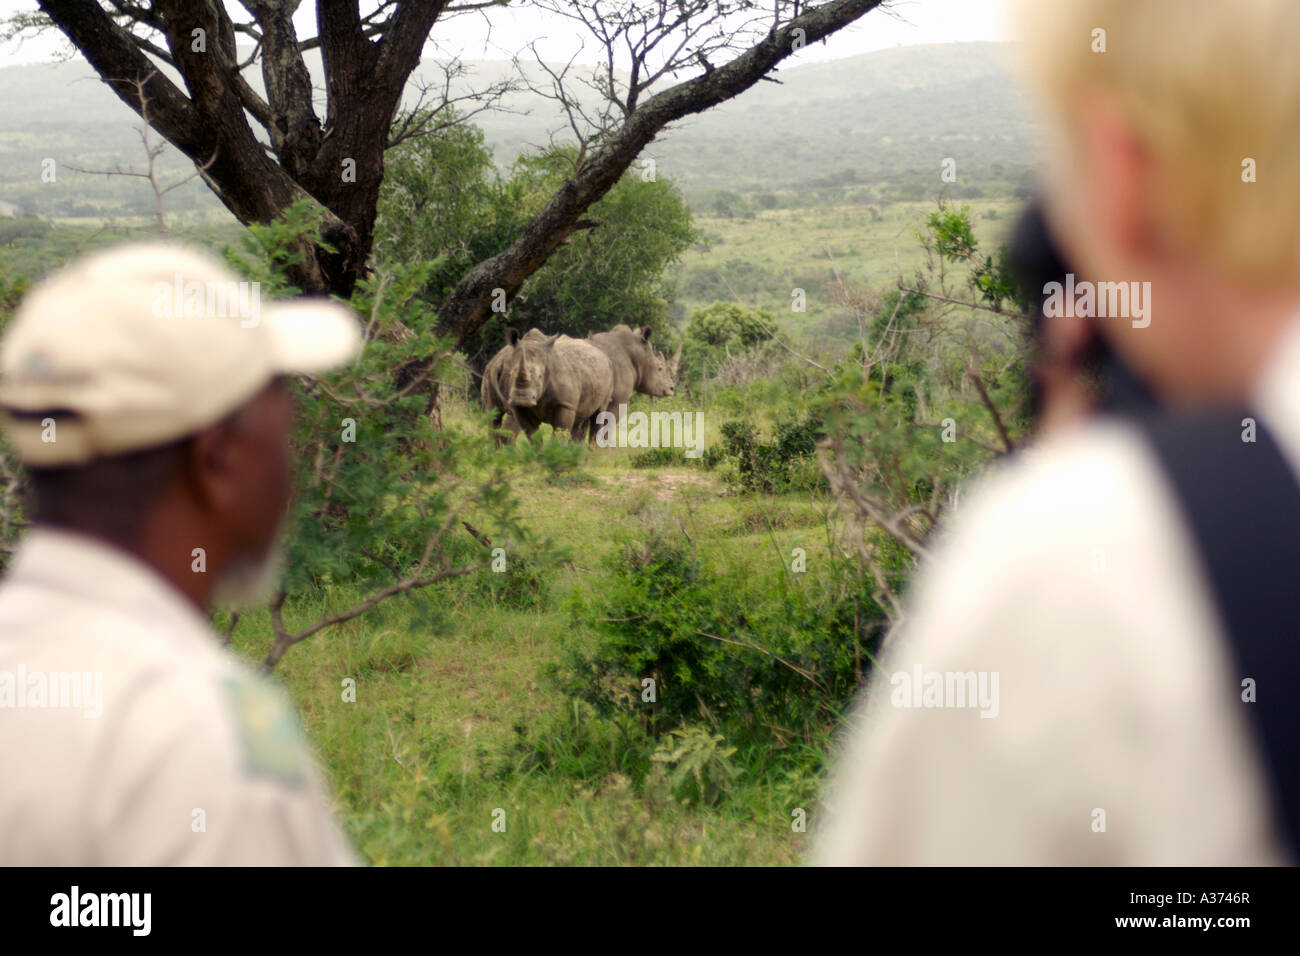 Game ranger Elliot Qwabe with tourists on a guided game walk in Umfolozi-Hluhluwe National Park in South Africa. - Stock Image